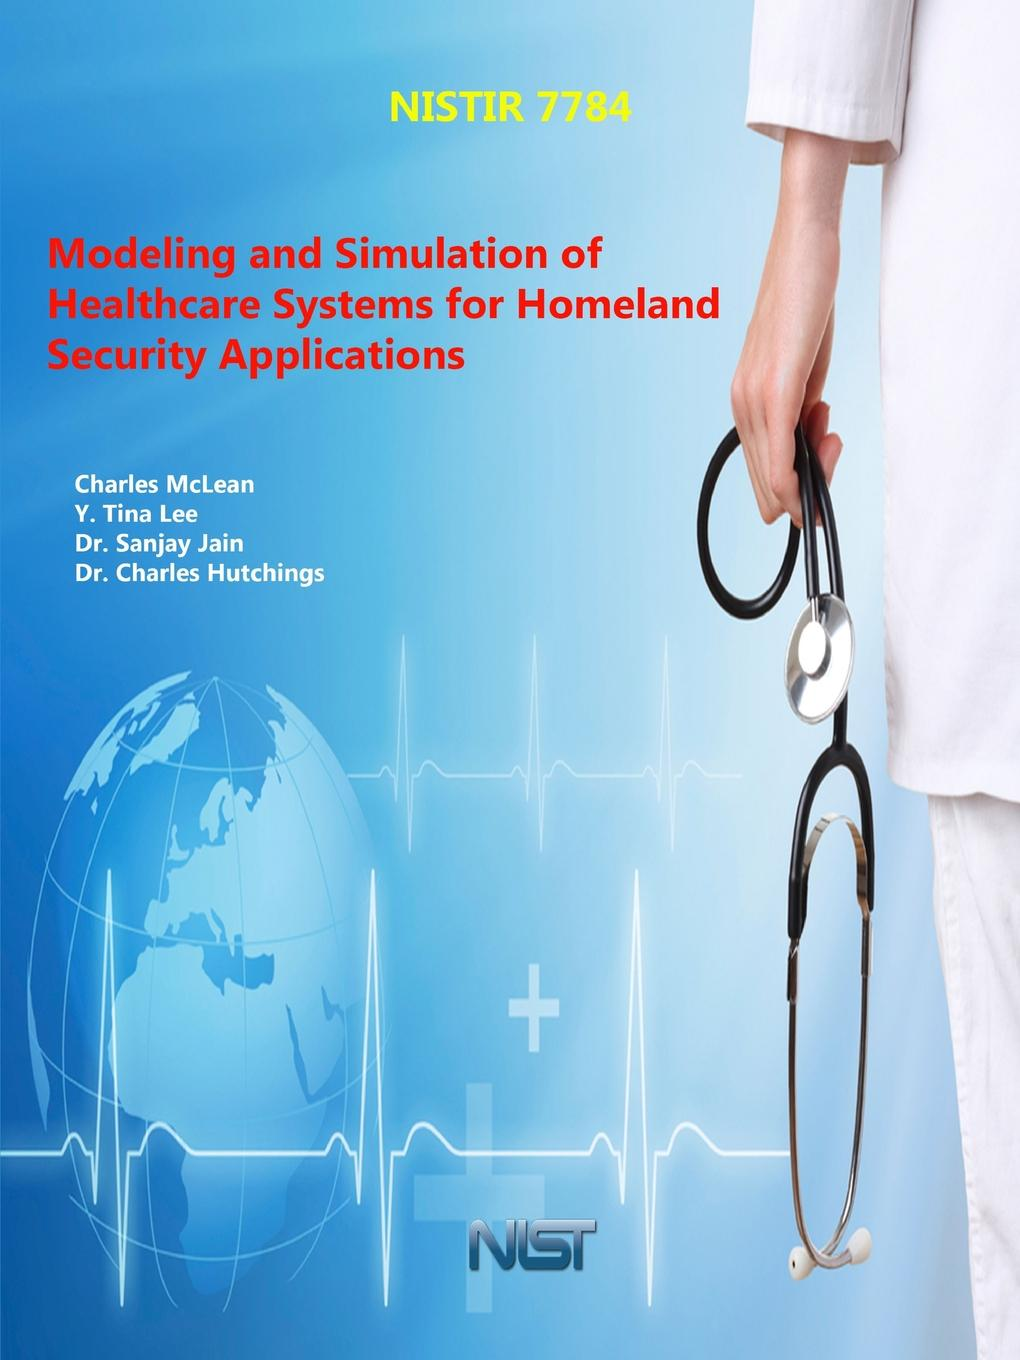 лучшая цена U.S. Department of Commerce, Charles McLean, Y. Tina Lee Modeling and Simulation of Healthcare Systems for Homeland Security Applications